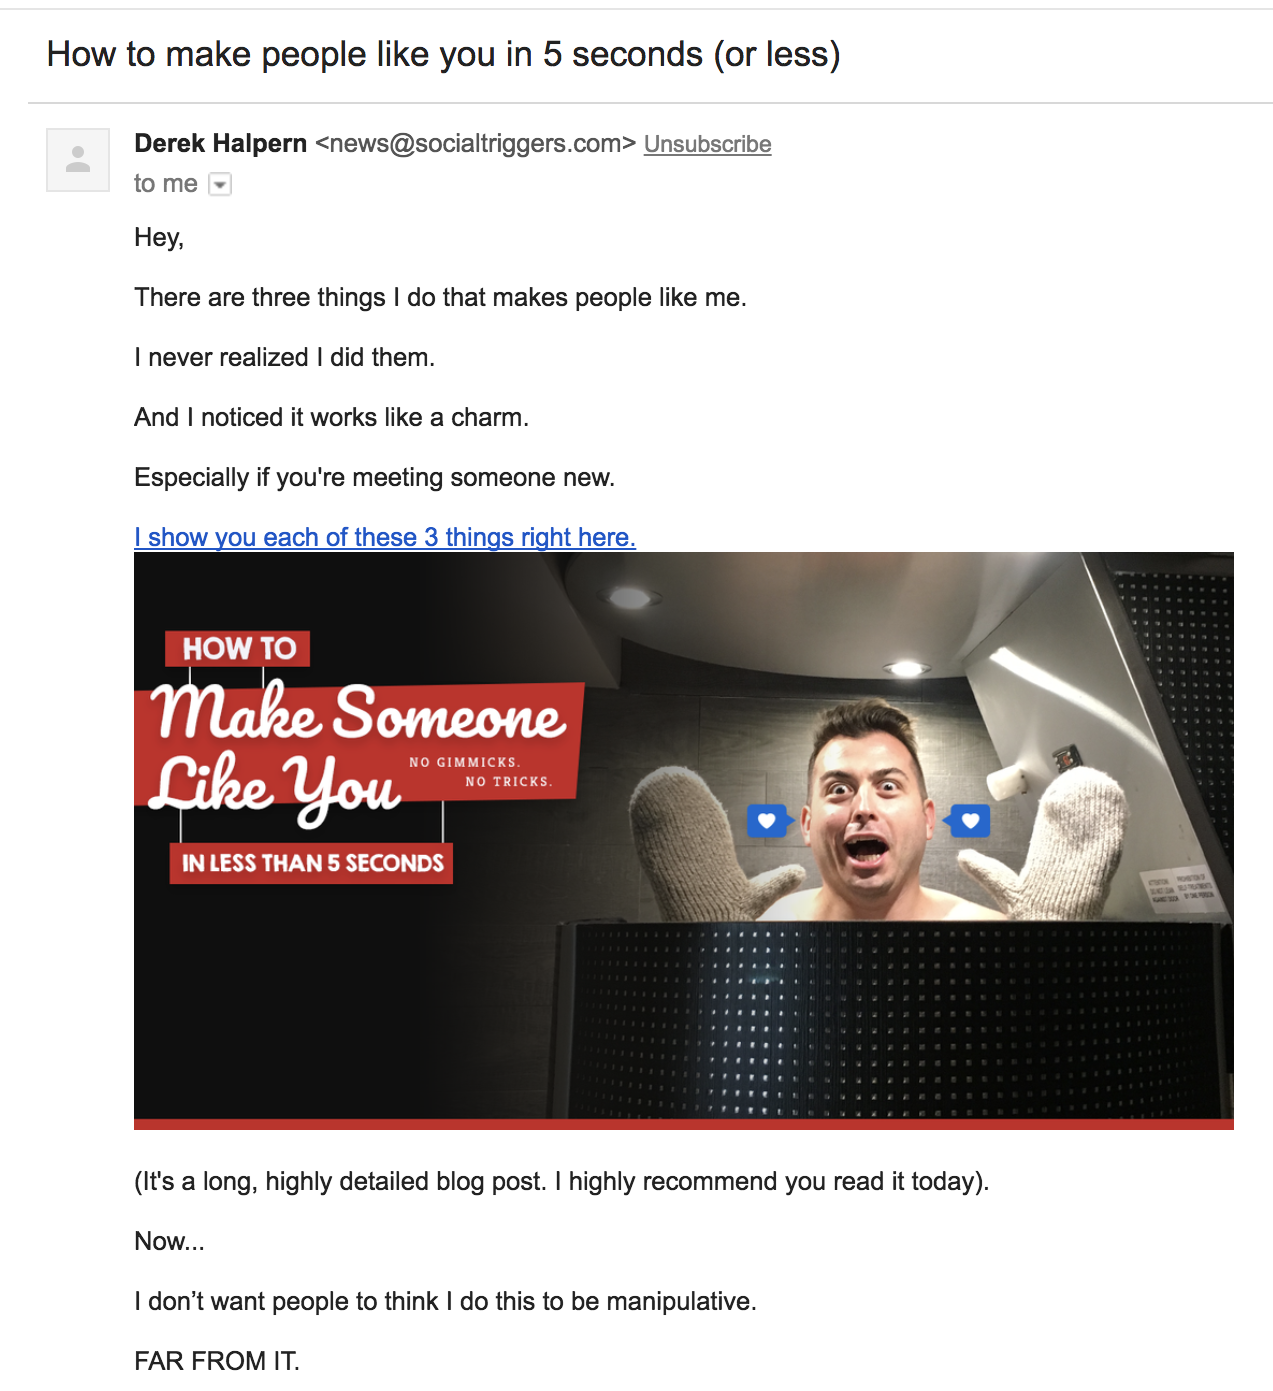 Screenshot of email how to make people like you